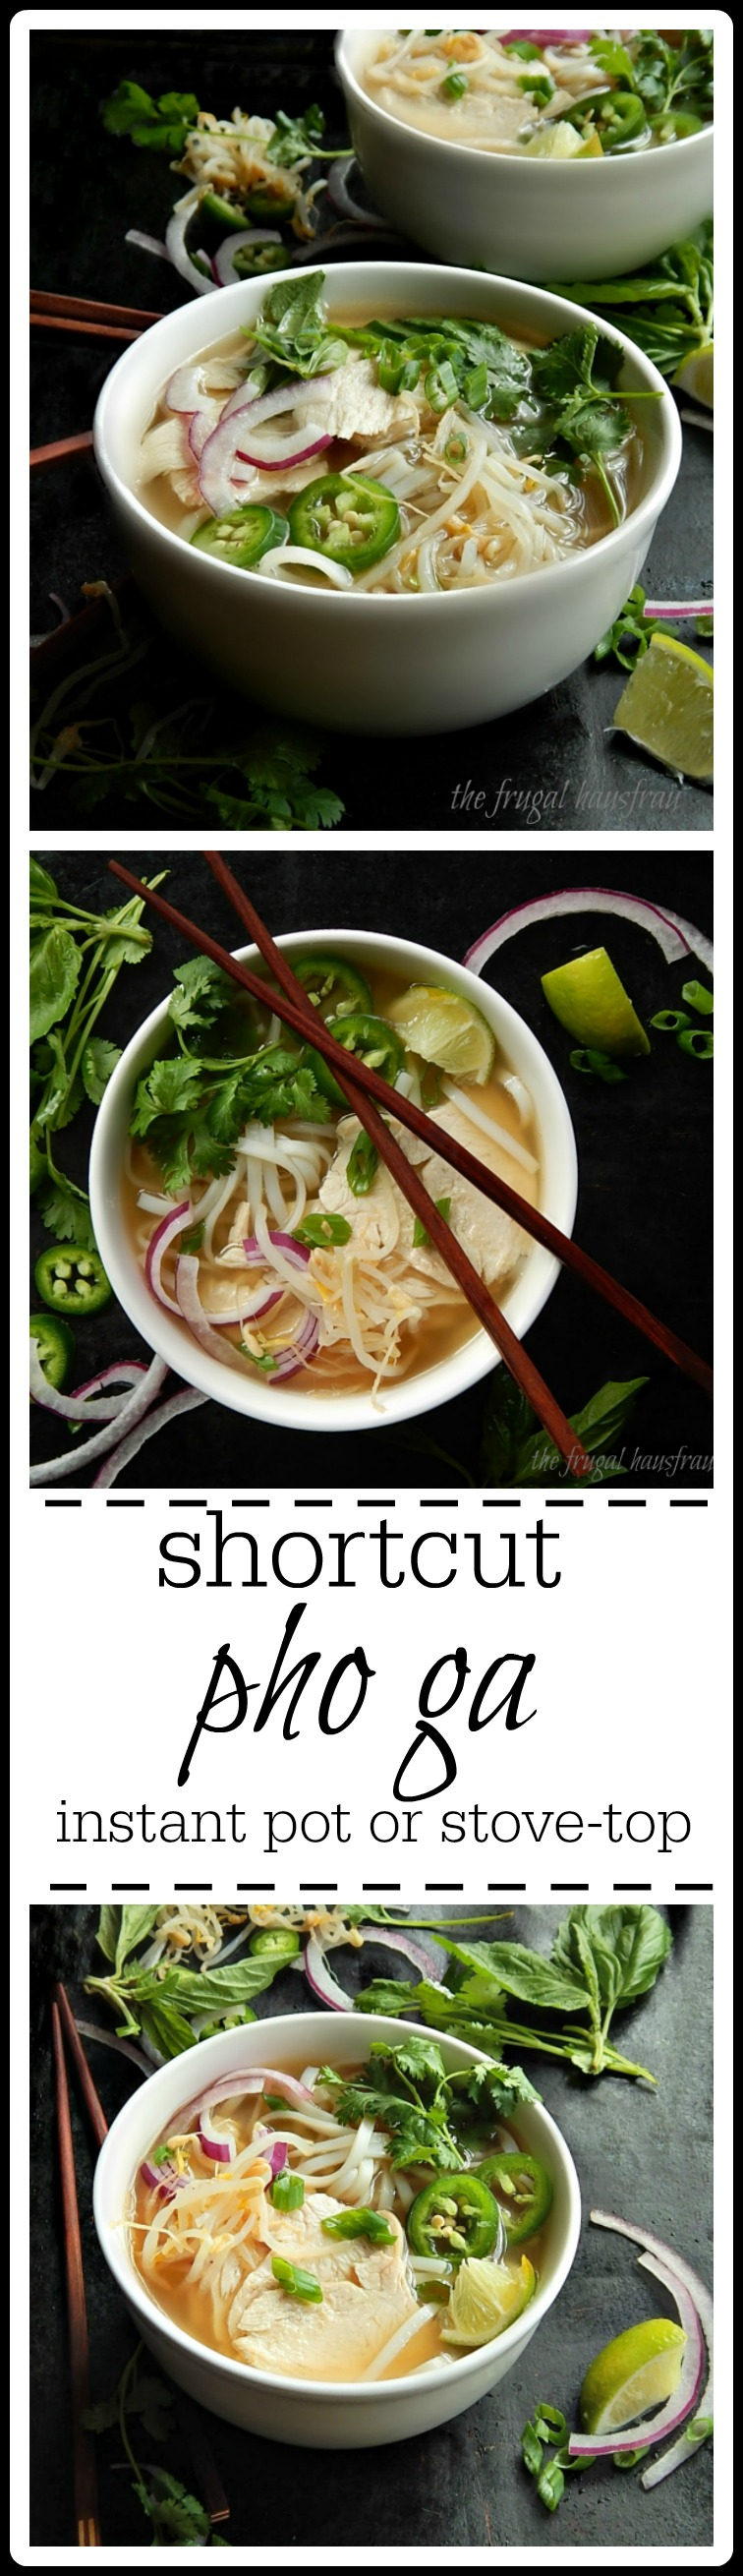 Pho Ga Quick & easy - shortcut from your Thanksgiving leftovers or make with leftover or poached chicken. You'll never guess this isn't a from scratch recipe!  Great flavor. #PhoGa #PhoGaTay #ShortcutPhoGa #VietnameseChickenSoup #SoupFromLeftoverTurkey